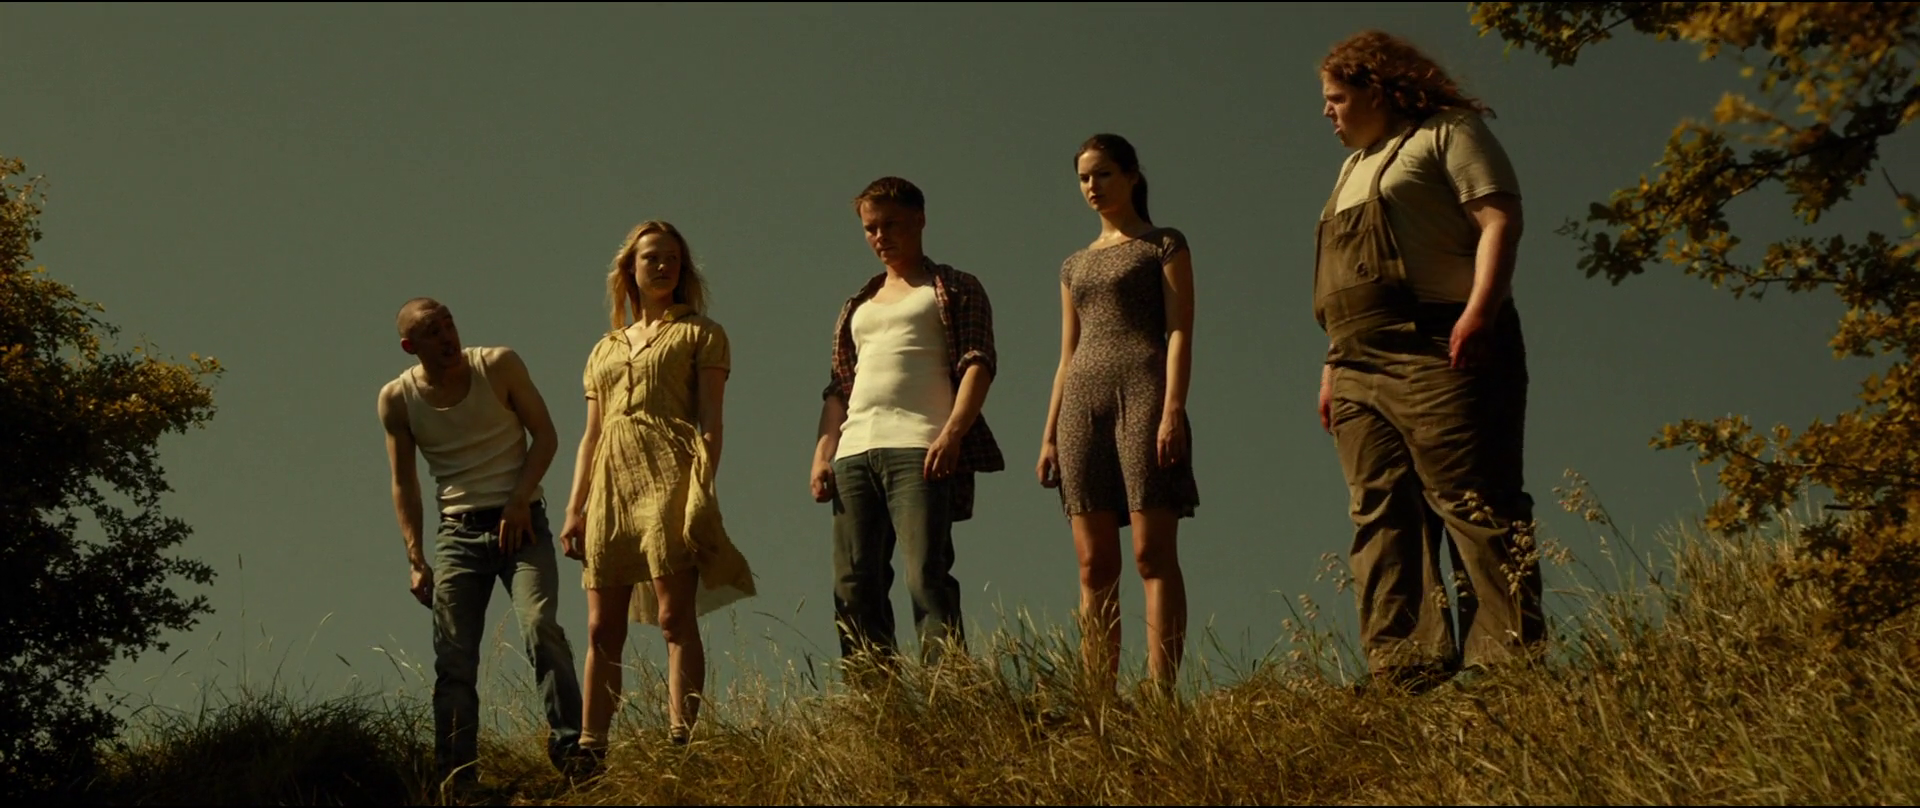 James Bloor, Jessica Madsen, Sam Strike, Vanessa Grasse and Sam Coleman in Leatherface (2017)